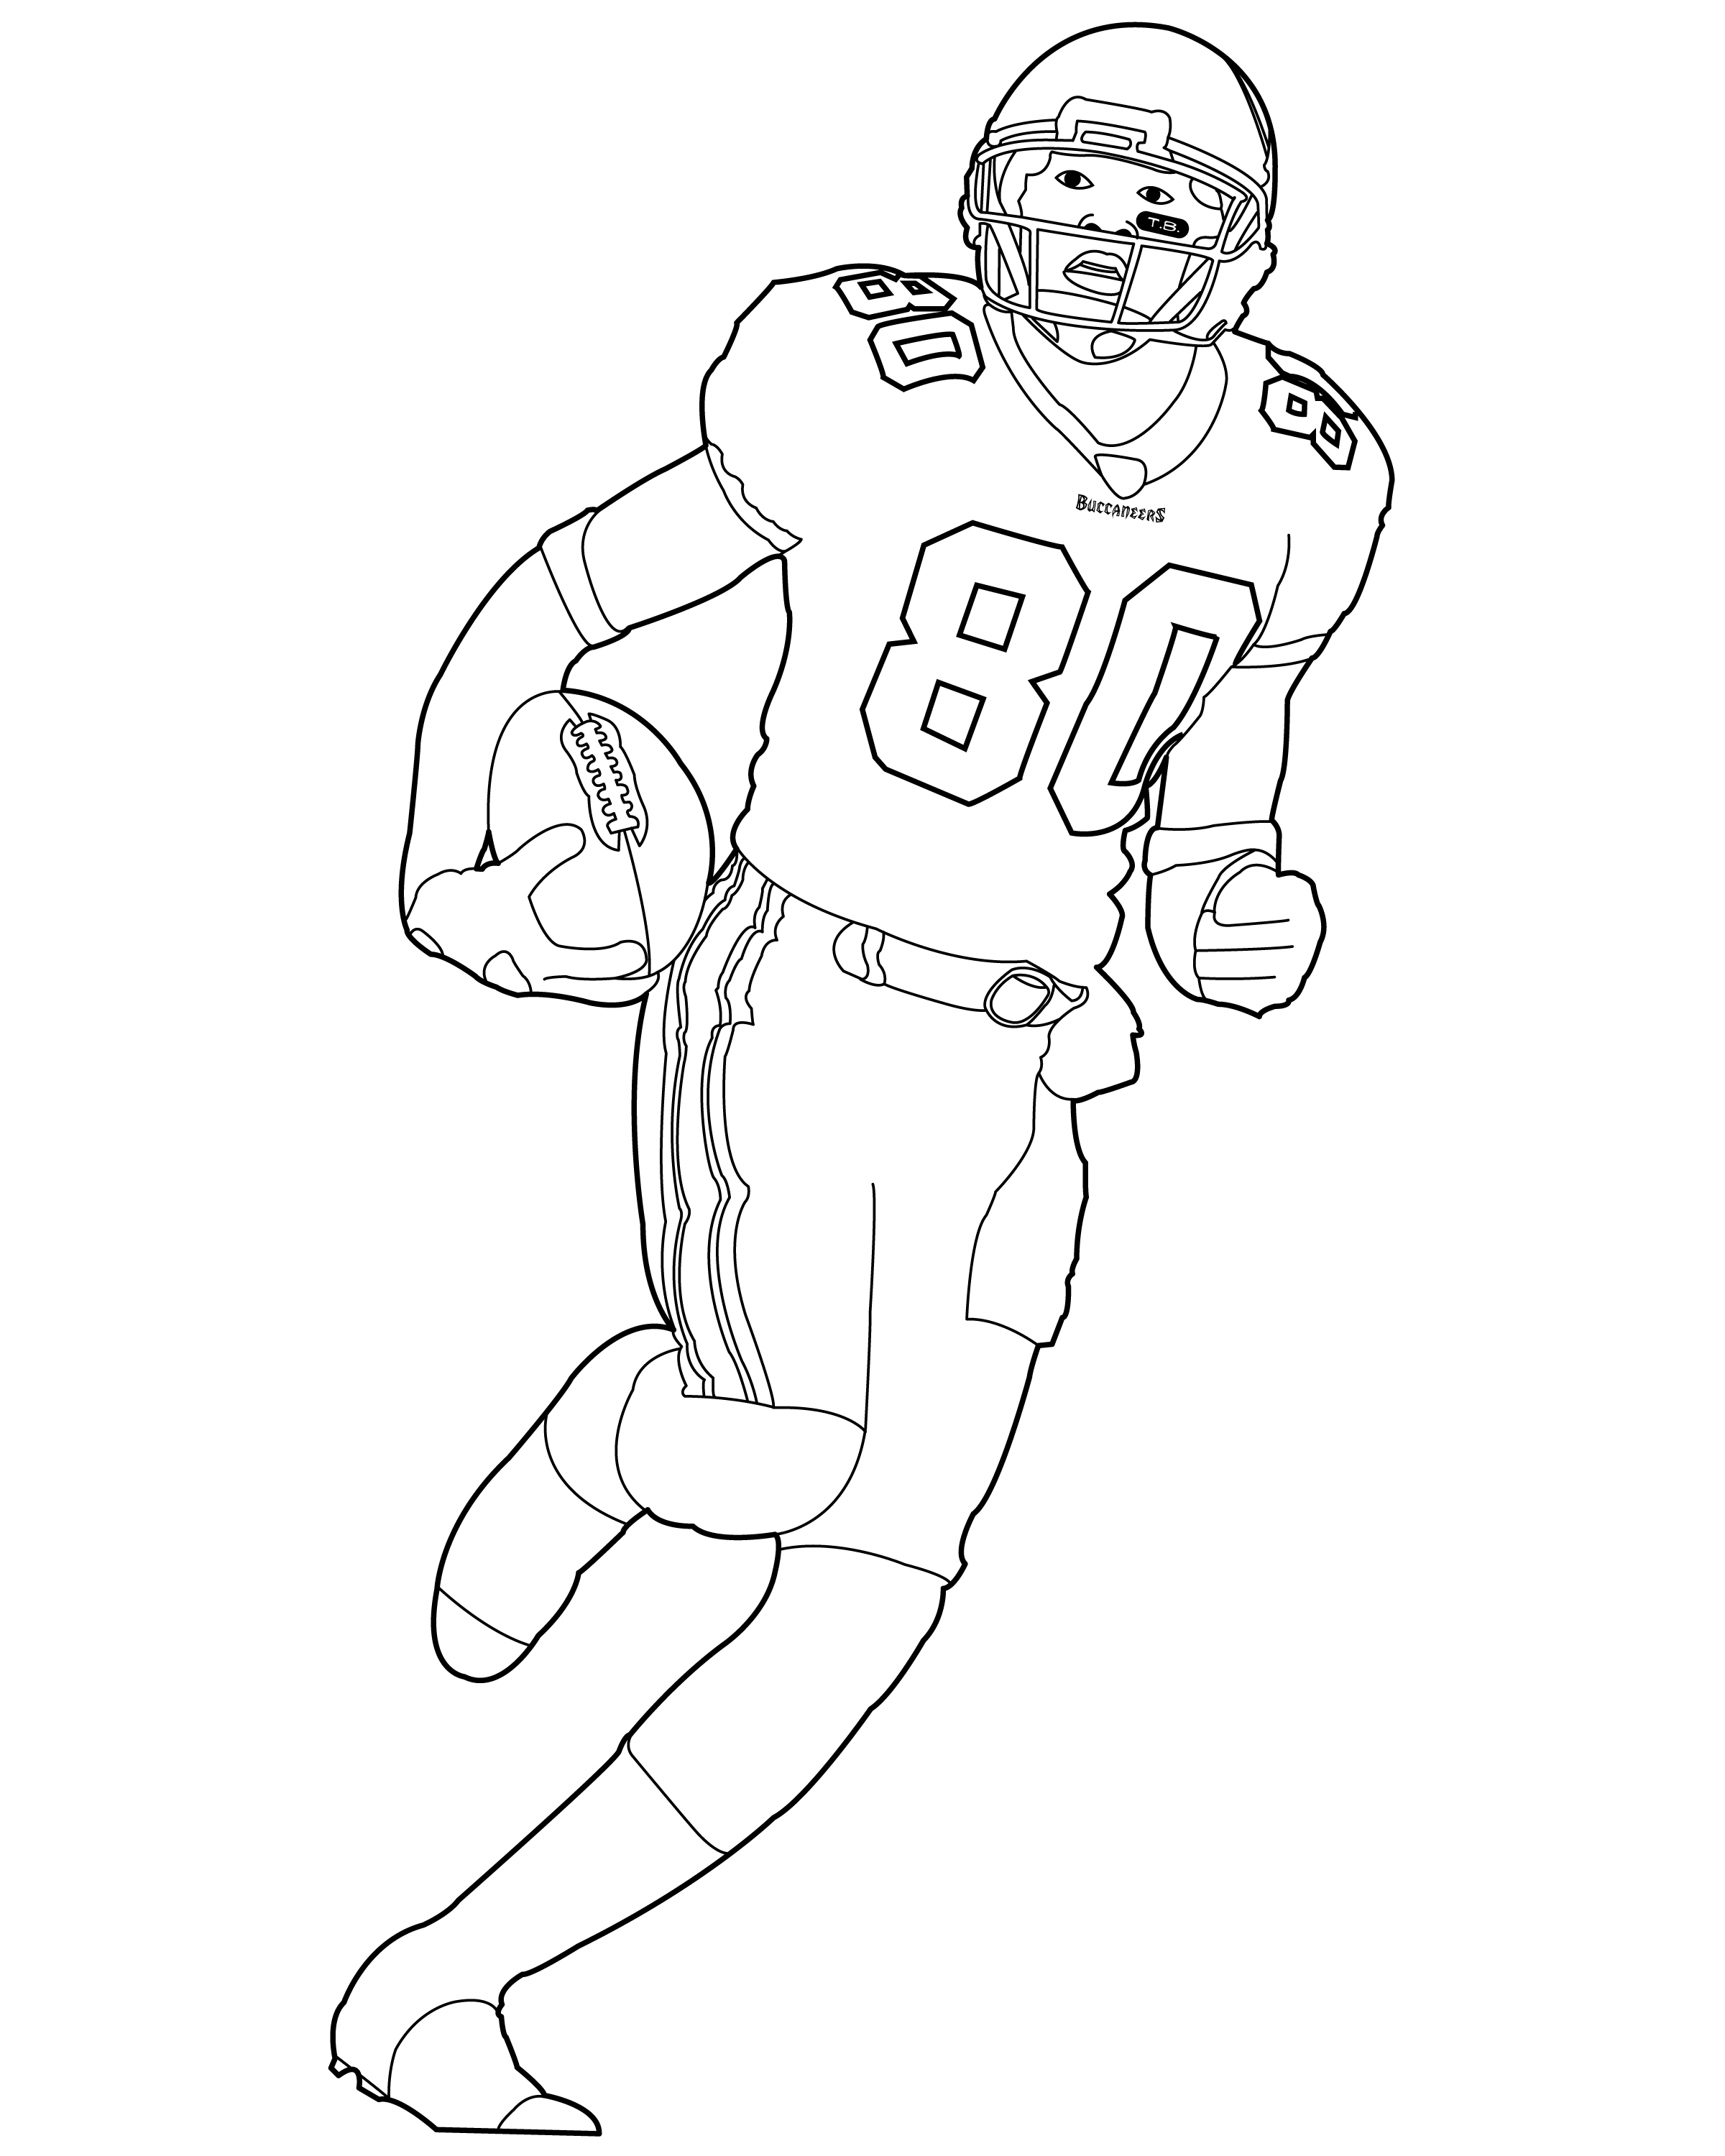 football player coloring sheet football player coloring pages to download and print for free football coloring player sheet